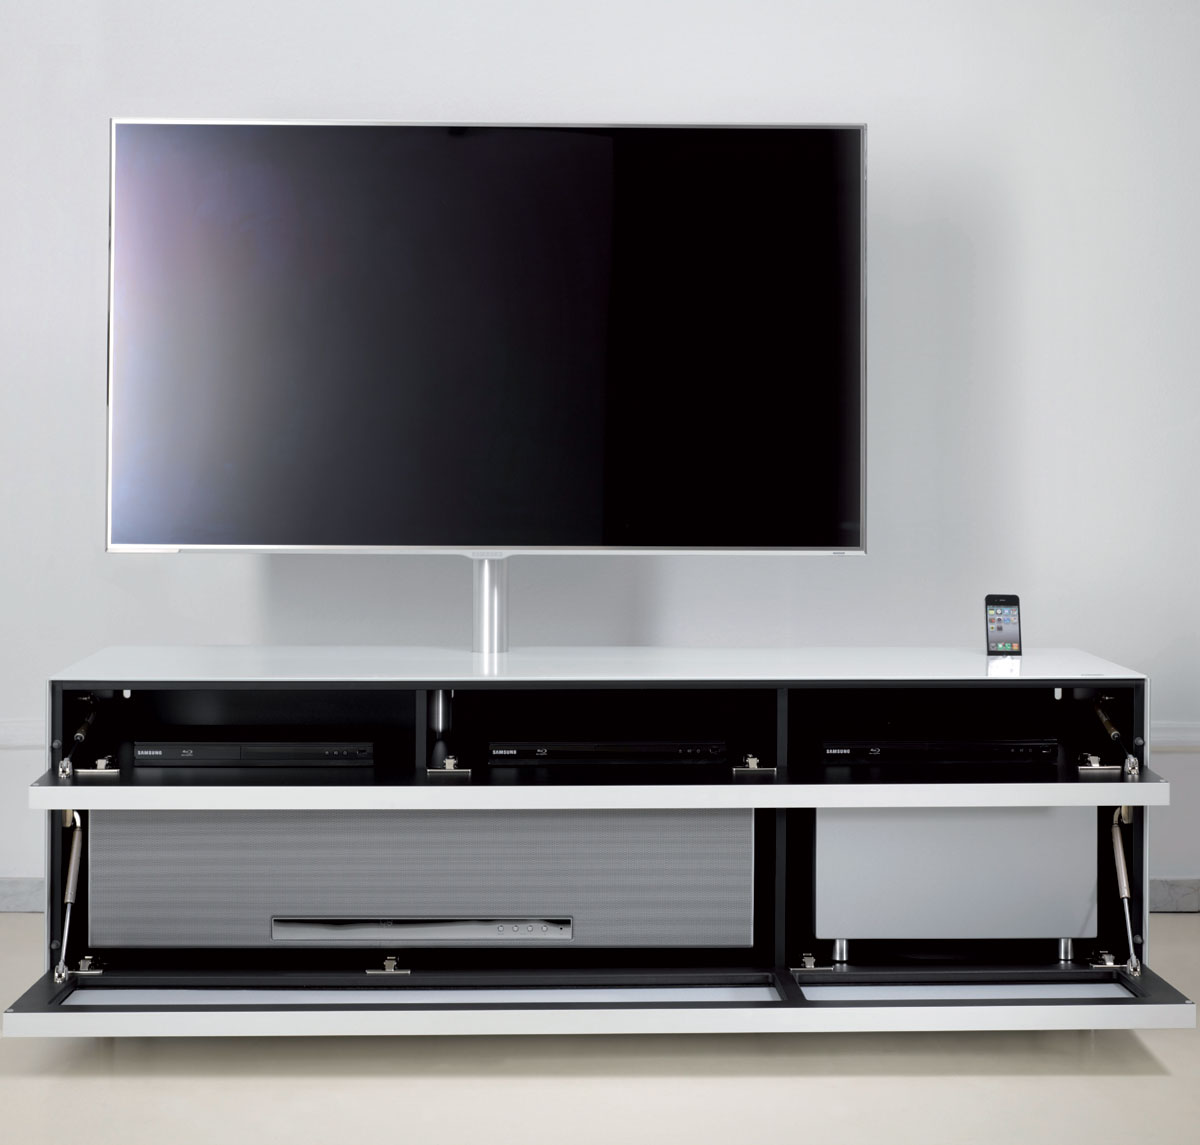 geschlossene tv m bel archive seite 2 von 2 tv m bel und hifi m bel guide. Black Bedroom Furniture Sets. Home Design Ideas